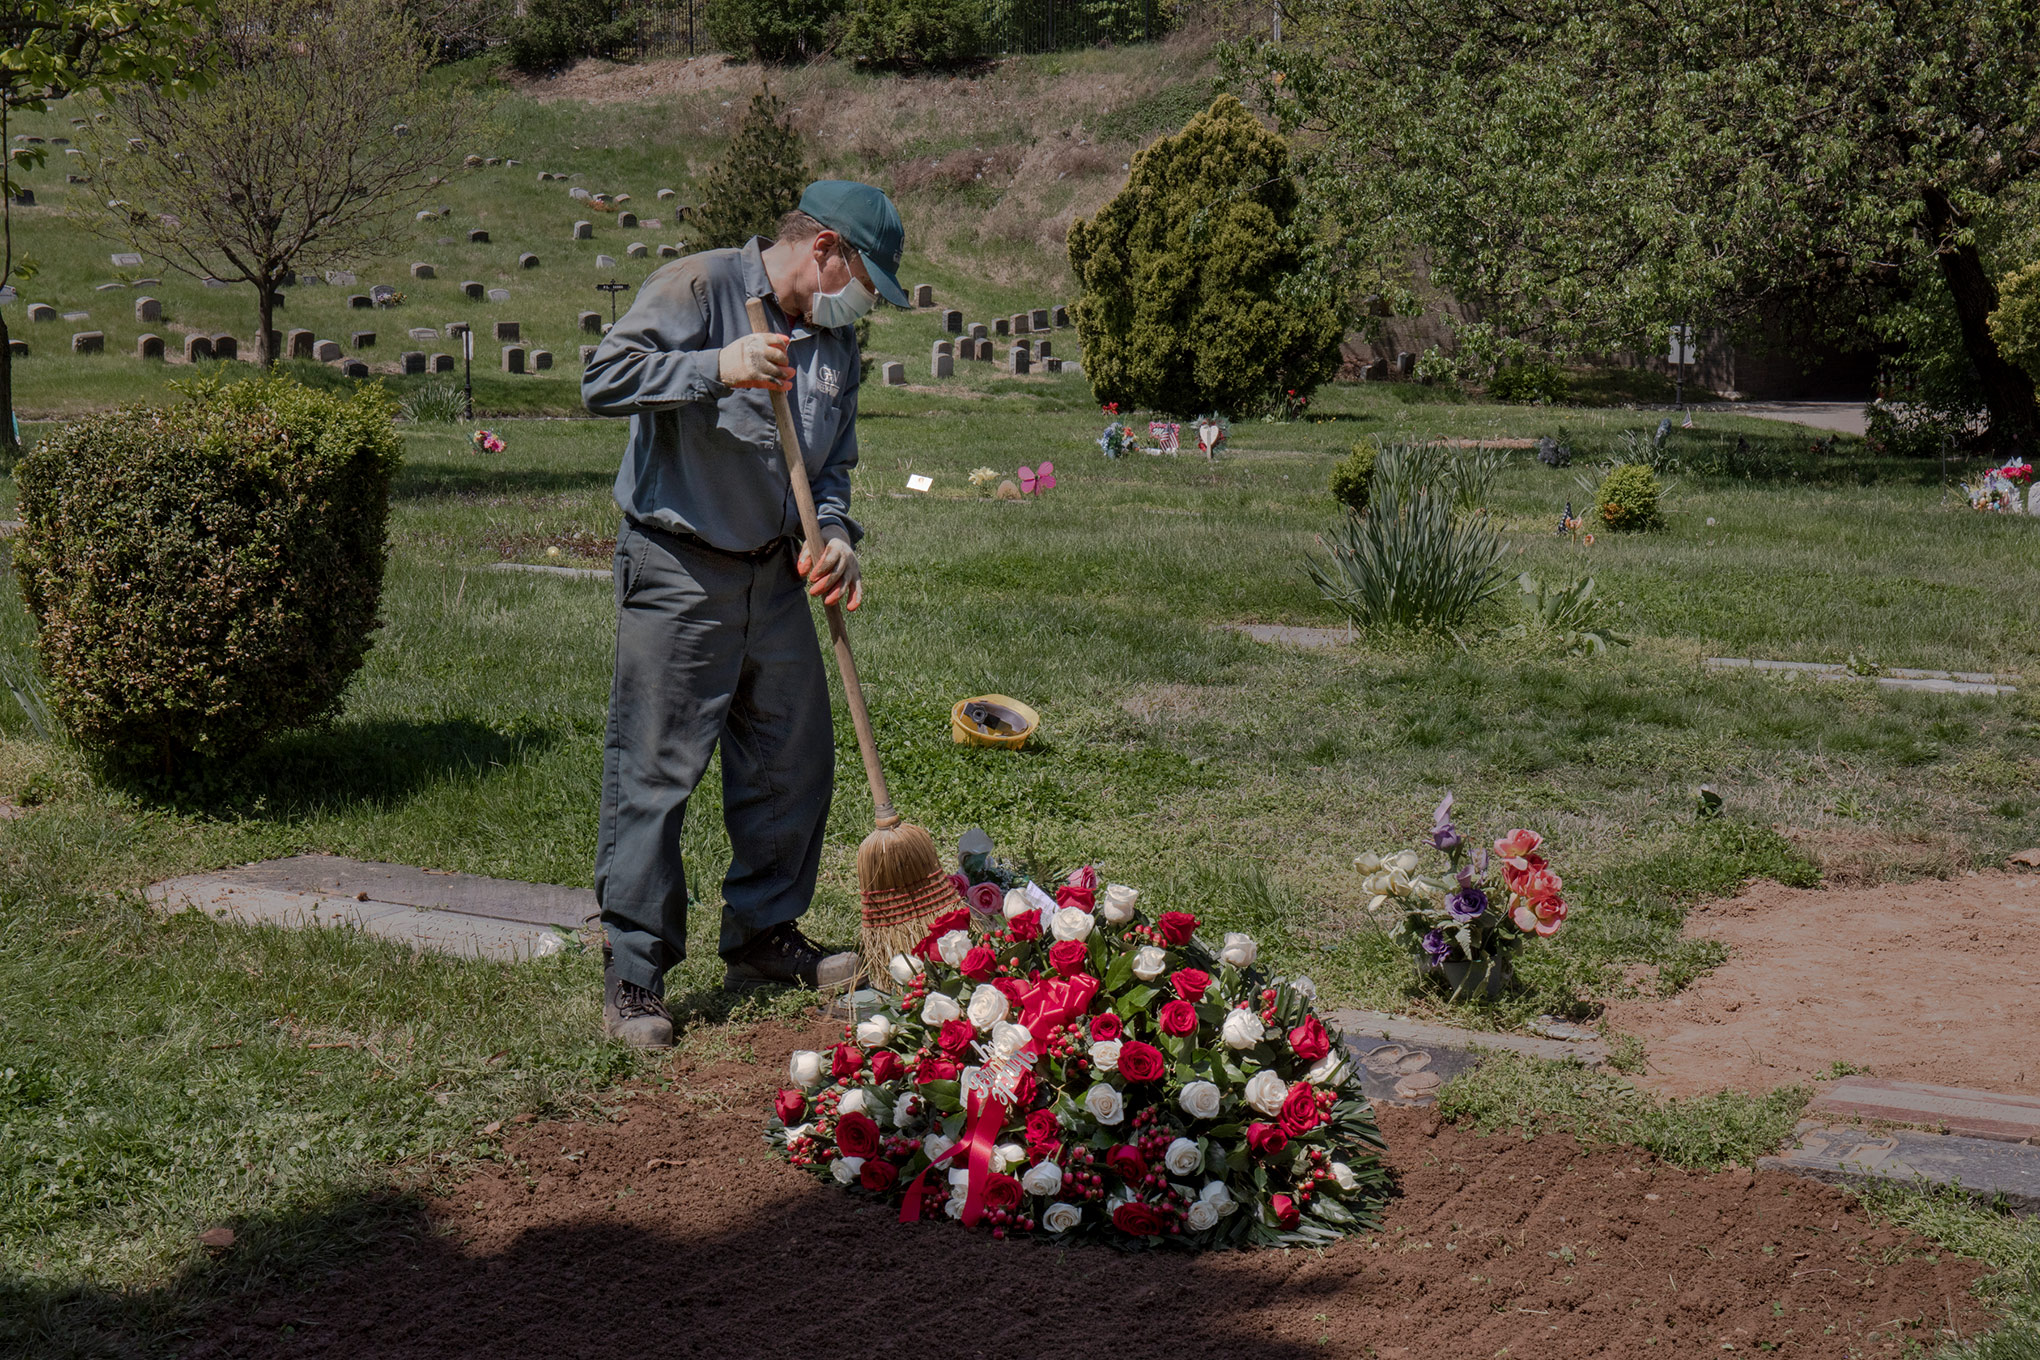 Janusz Karkos tends the grave of a COVID-19 victim at Brooklyn's Green-Wood Cemetary on May 4. As of Sept. 21, the U.S. coronavirus death toll surpassed 200,000